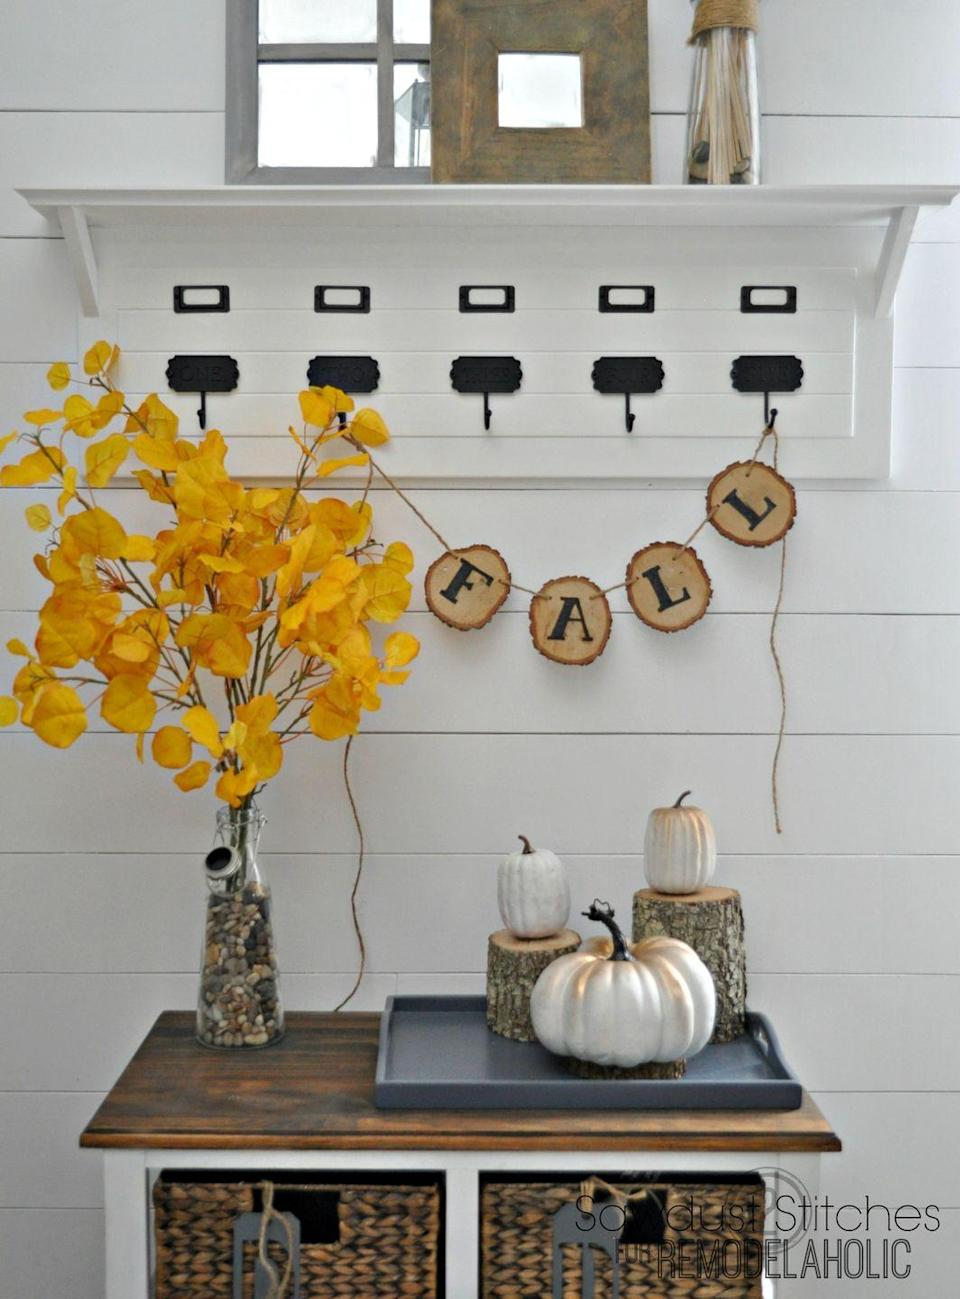 "<p>A simple fall banner can stay up all season without being too specific to just one holiday. <a href=""https://www.remodelaholic.com/rustic-fall-wood-slice-banner/"" rel=""nofollow noopener"" target=""_blank"" data-ylk=""slk:Remodelaholic"" class=""link rapid-noclick-resp"">Remodelaholic</a> used a wood burner to etch the letters onto each wood slice, but vinyl transfer paper would work just fine.</p><p><a class=""link rapid-noclick-resp"" href=""https://loveleovinyl.com/shop/ols/products/ultra-glitter-adhesive"" rel=""nofollow noopener"" target=""_blank"" data-ylk=""slk:BUY NOW"">BUY NOW</a><em><strong> Glitter adhesive paper, $2.50</strong></em></p>"